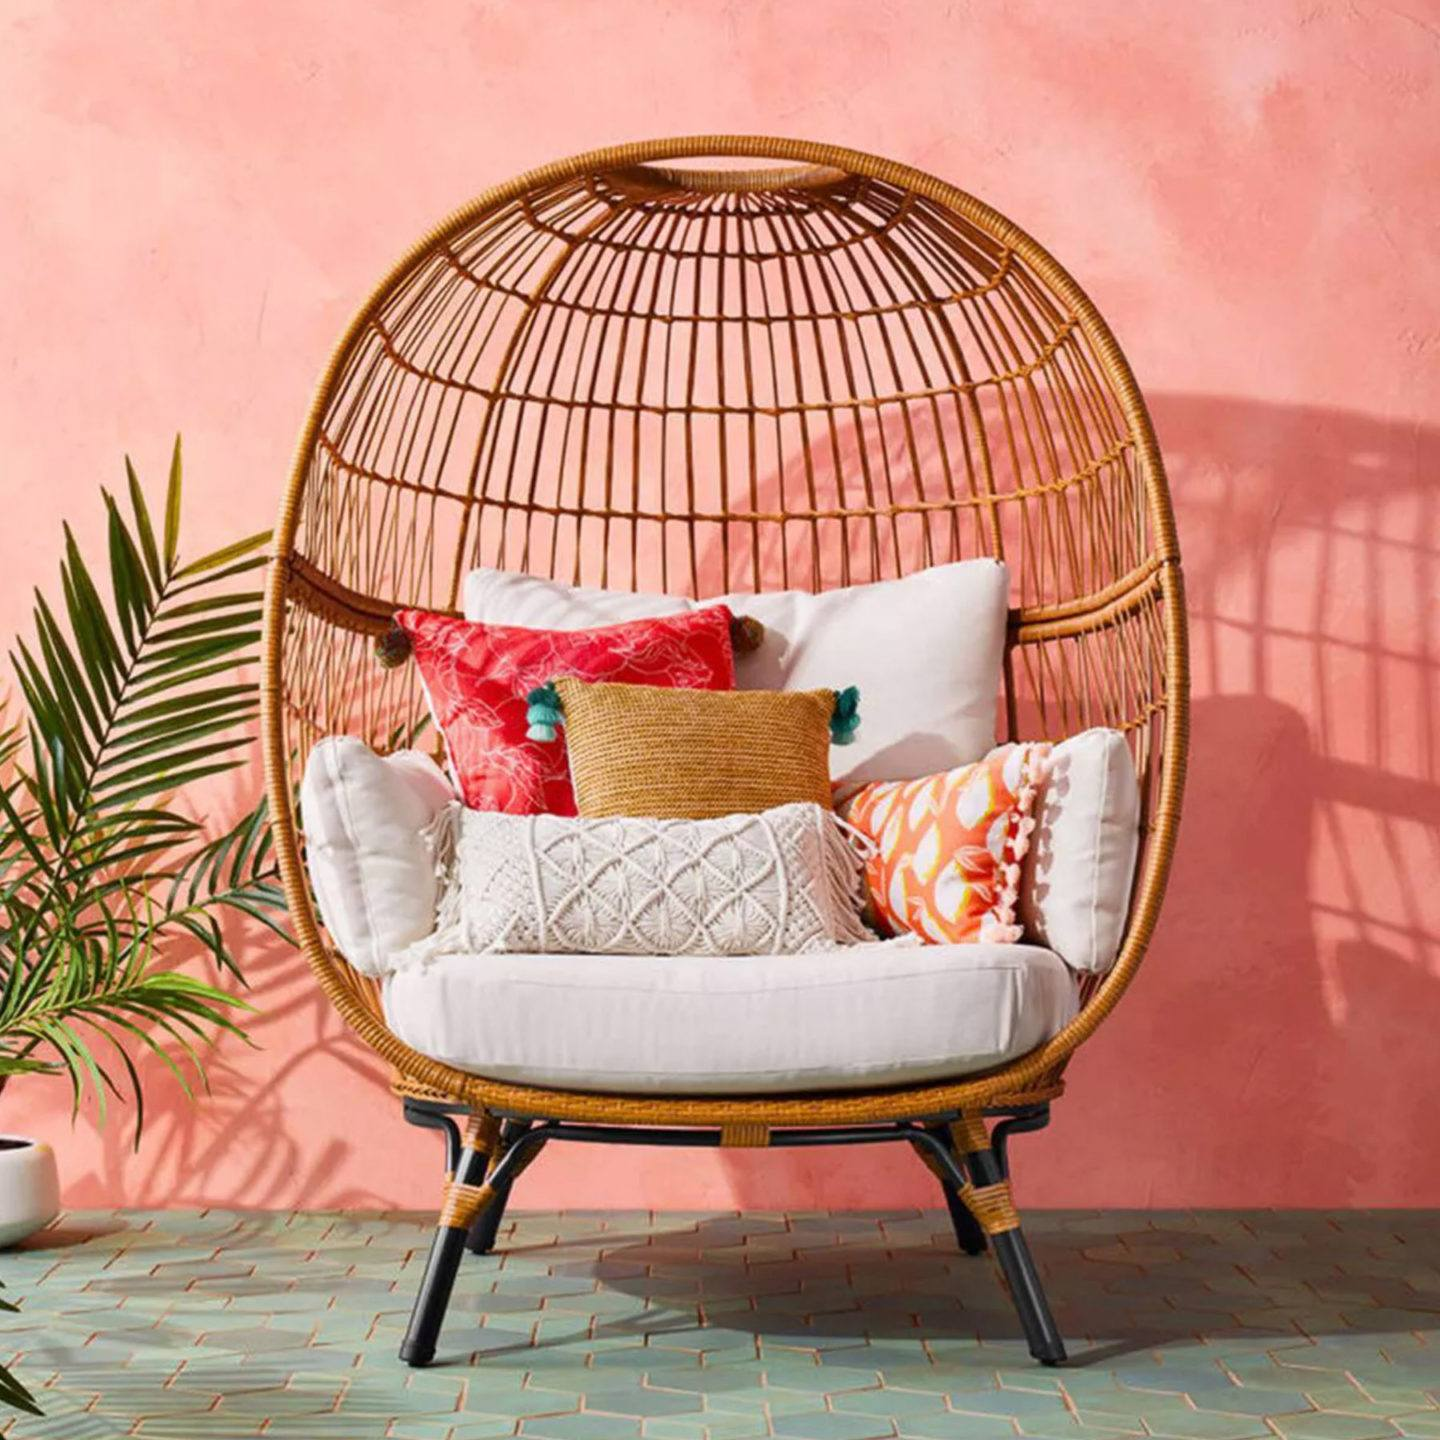 8 affordable egg chairs, by lifestyle blogger What The Fab